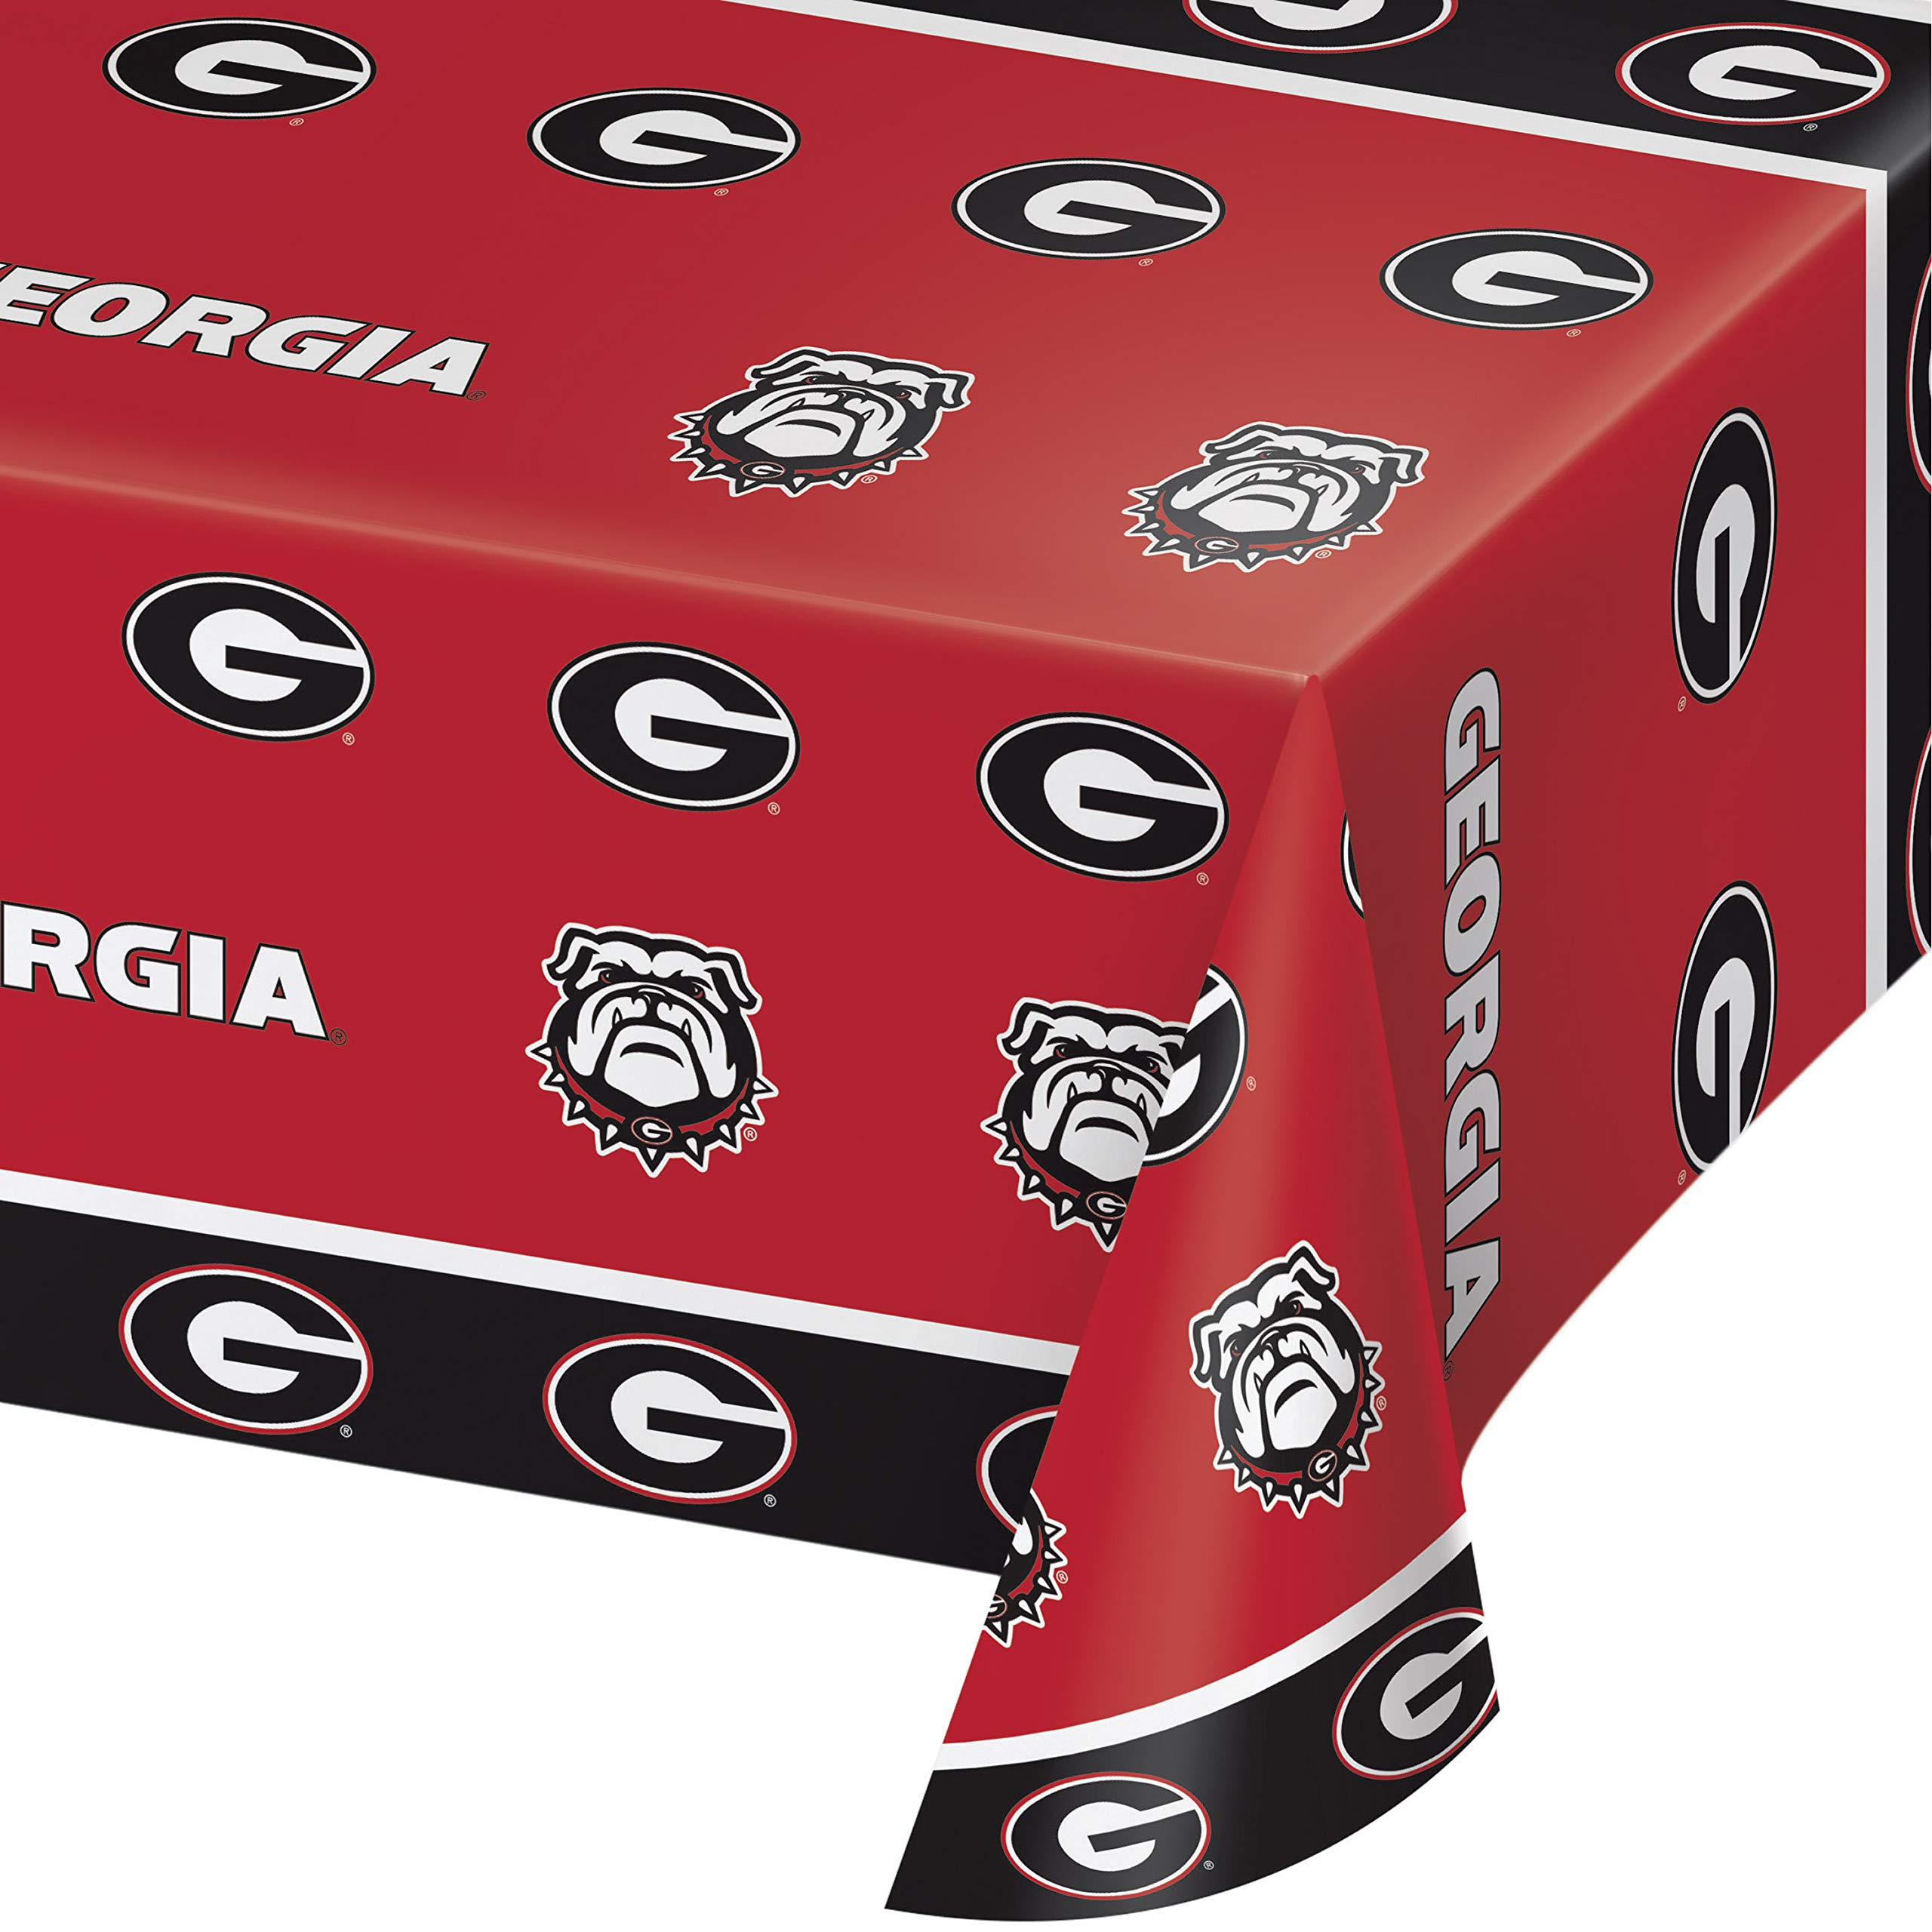 University of Georgia Plastic Tablecloths, 3 ct by Creative Converting